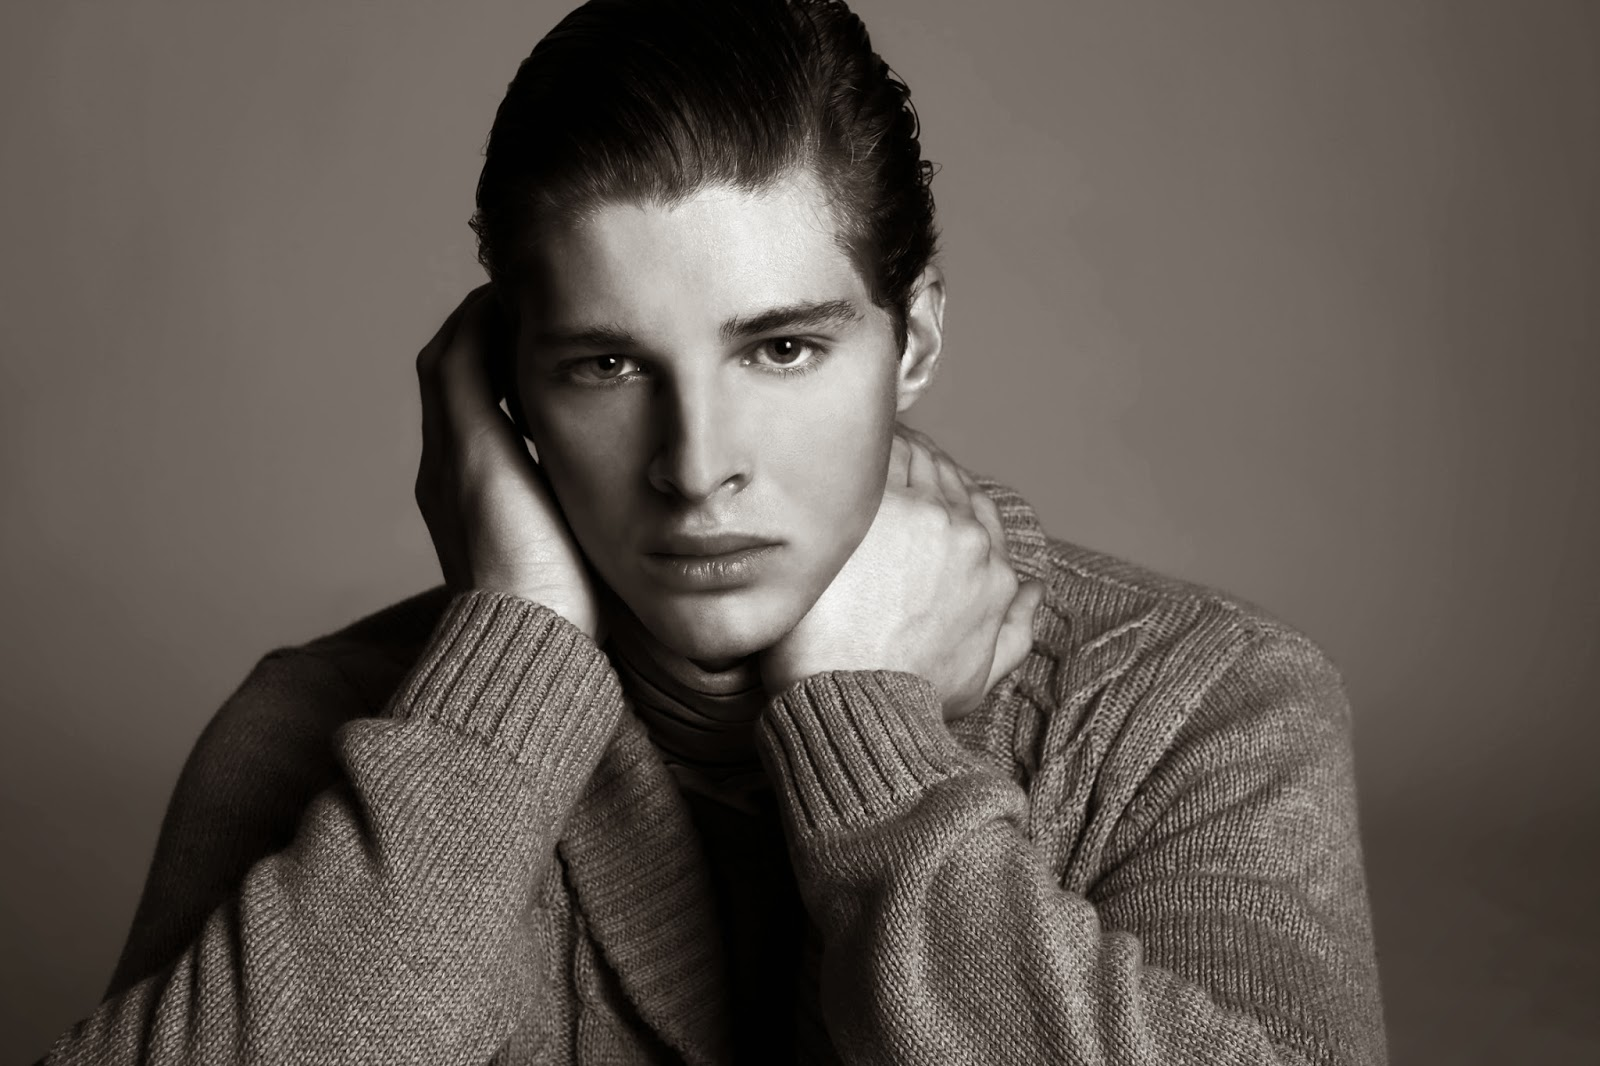 SPENCER B. (MAJOR MODEL MANAGEMENT) POR AIDAN YEOH 2 SPENCER B. (MAJOR MODEL MANAGEMENT) POR AIDAN YEOH